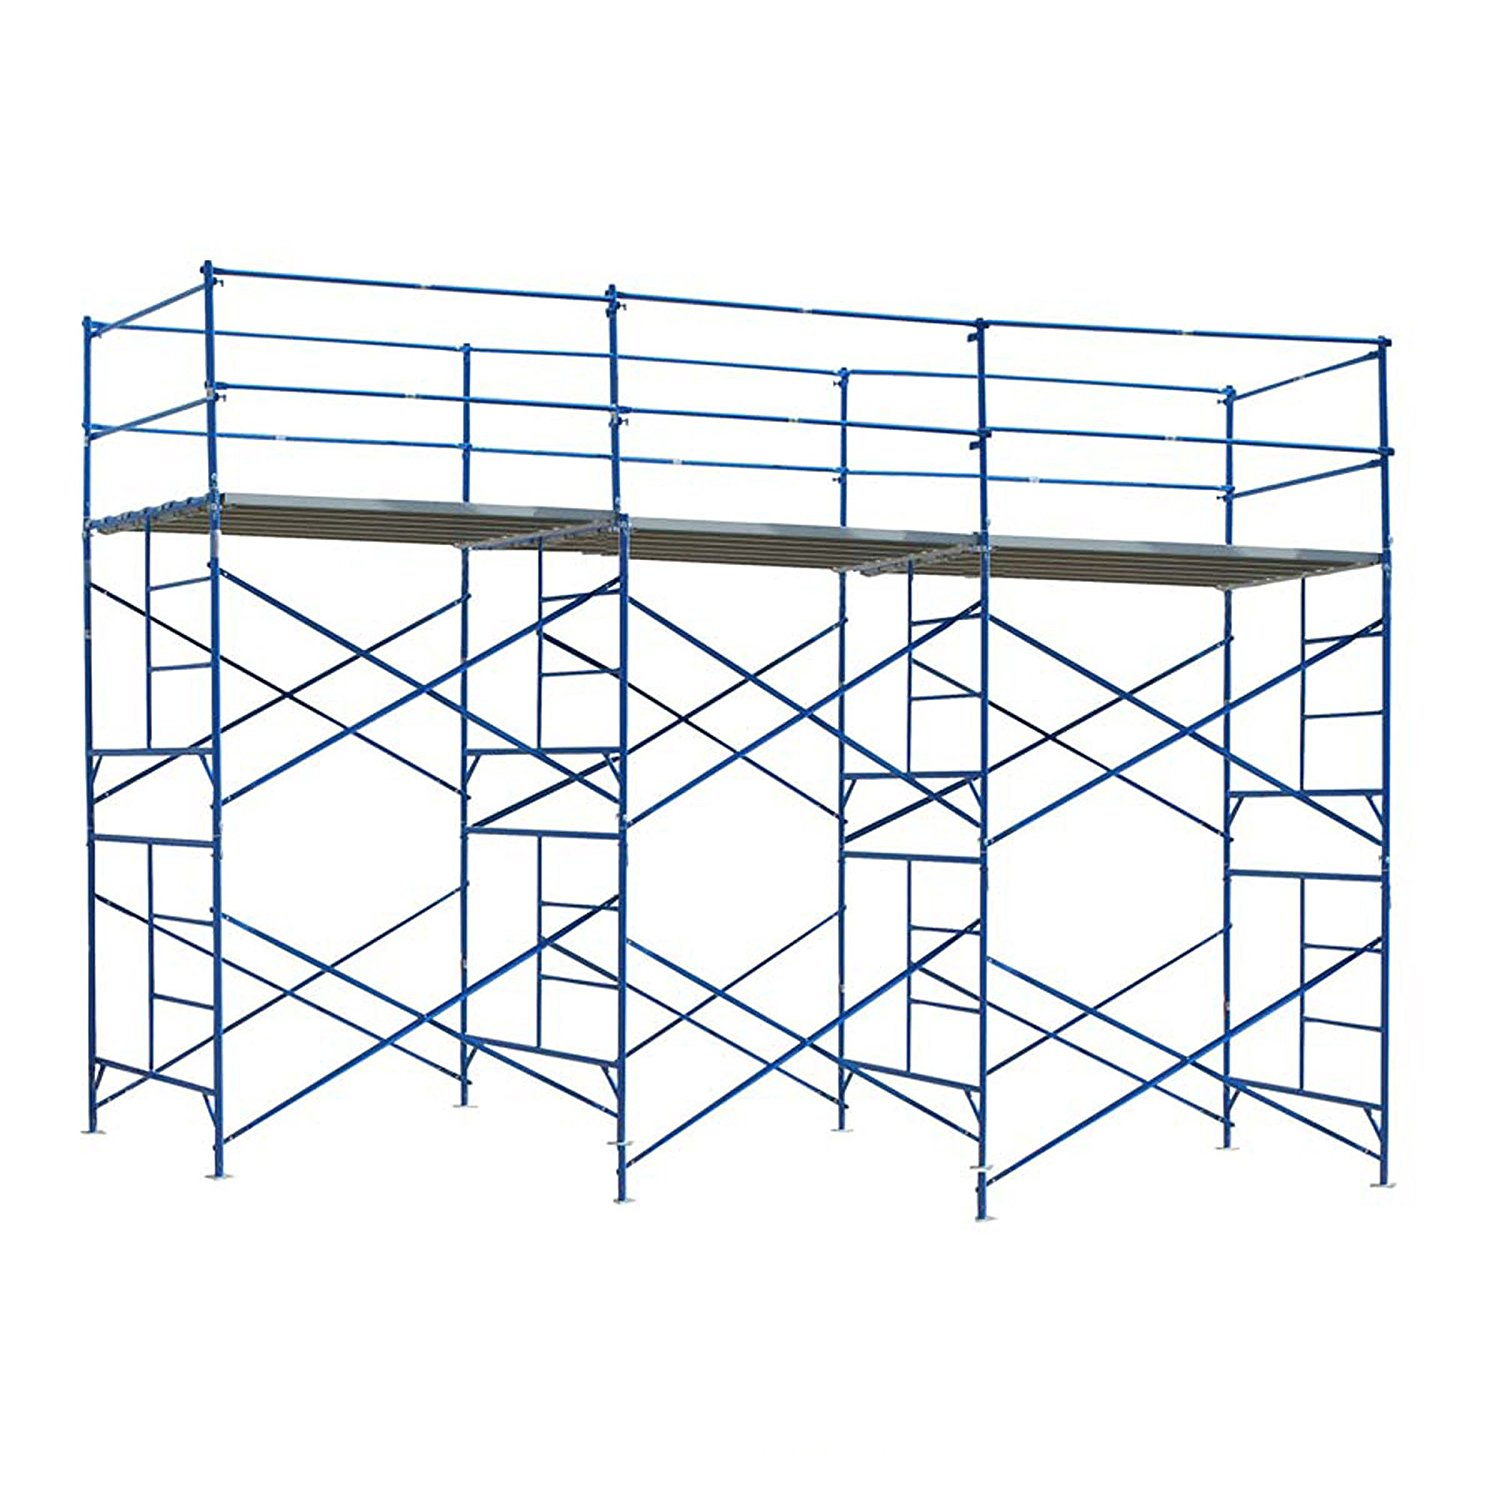 10 ft. x 21 ft. x 5 ft. 2-Story Commercial Grade Scaffold 1,500 lb. Load Capacity by New Buffalo Corp.